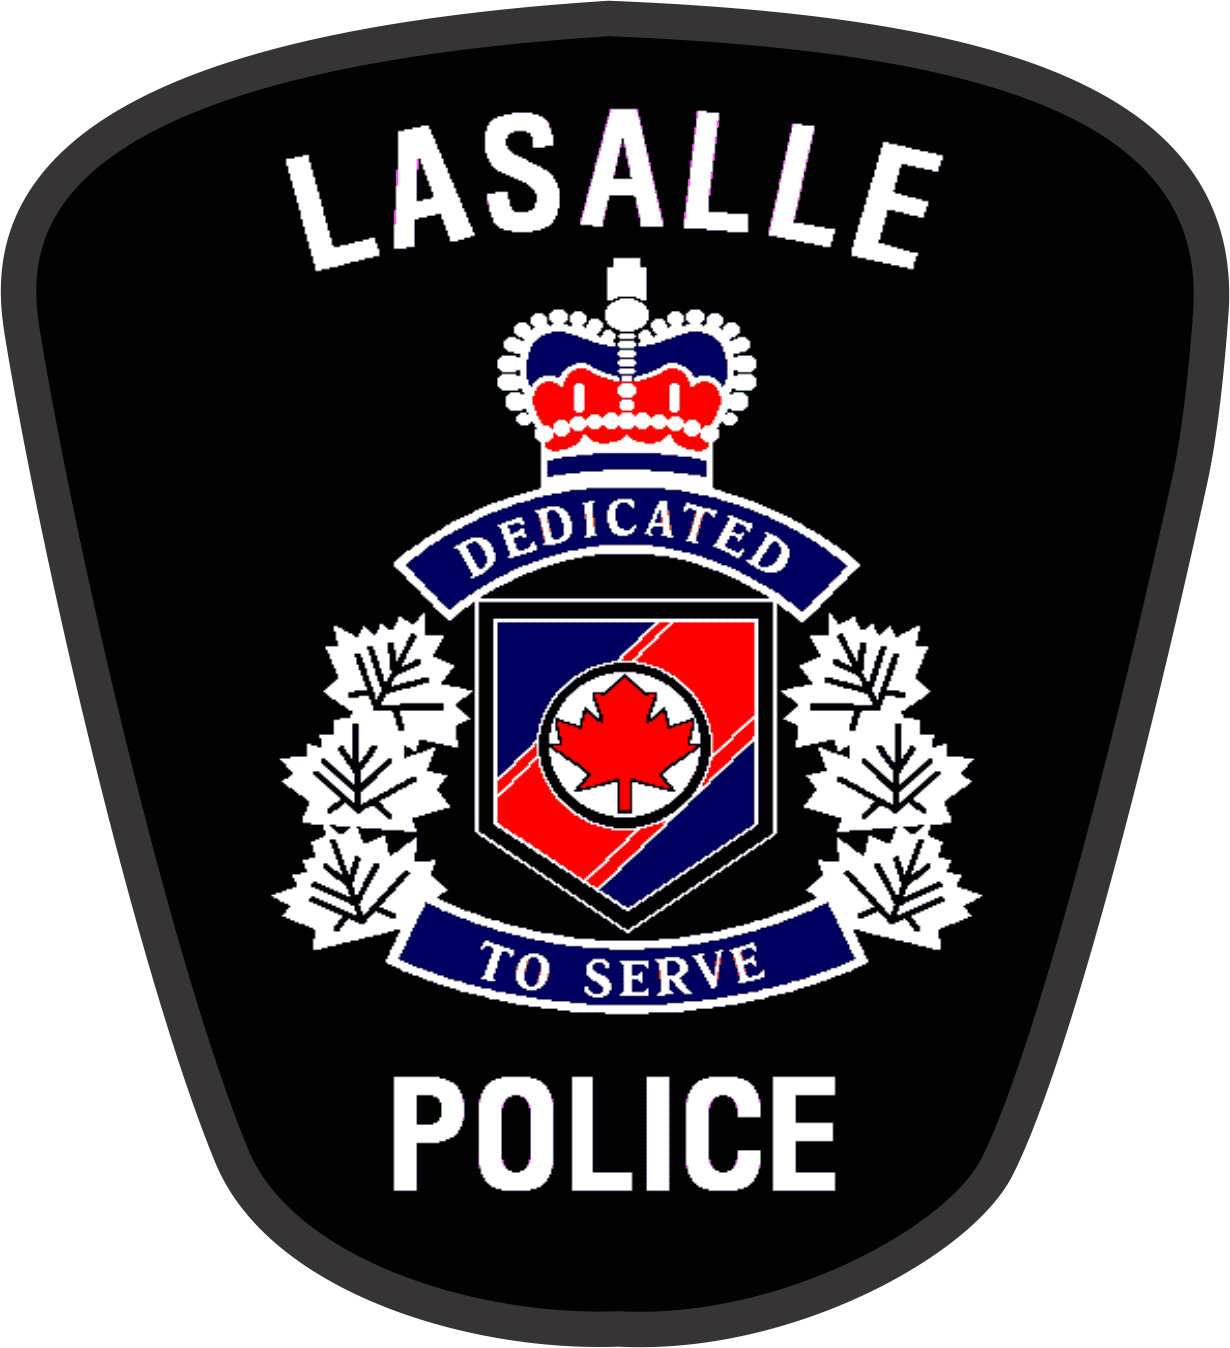 LaSalle Police Department Badge Image